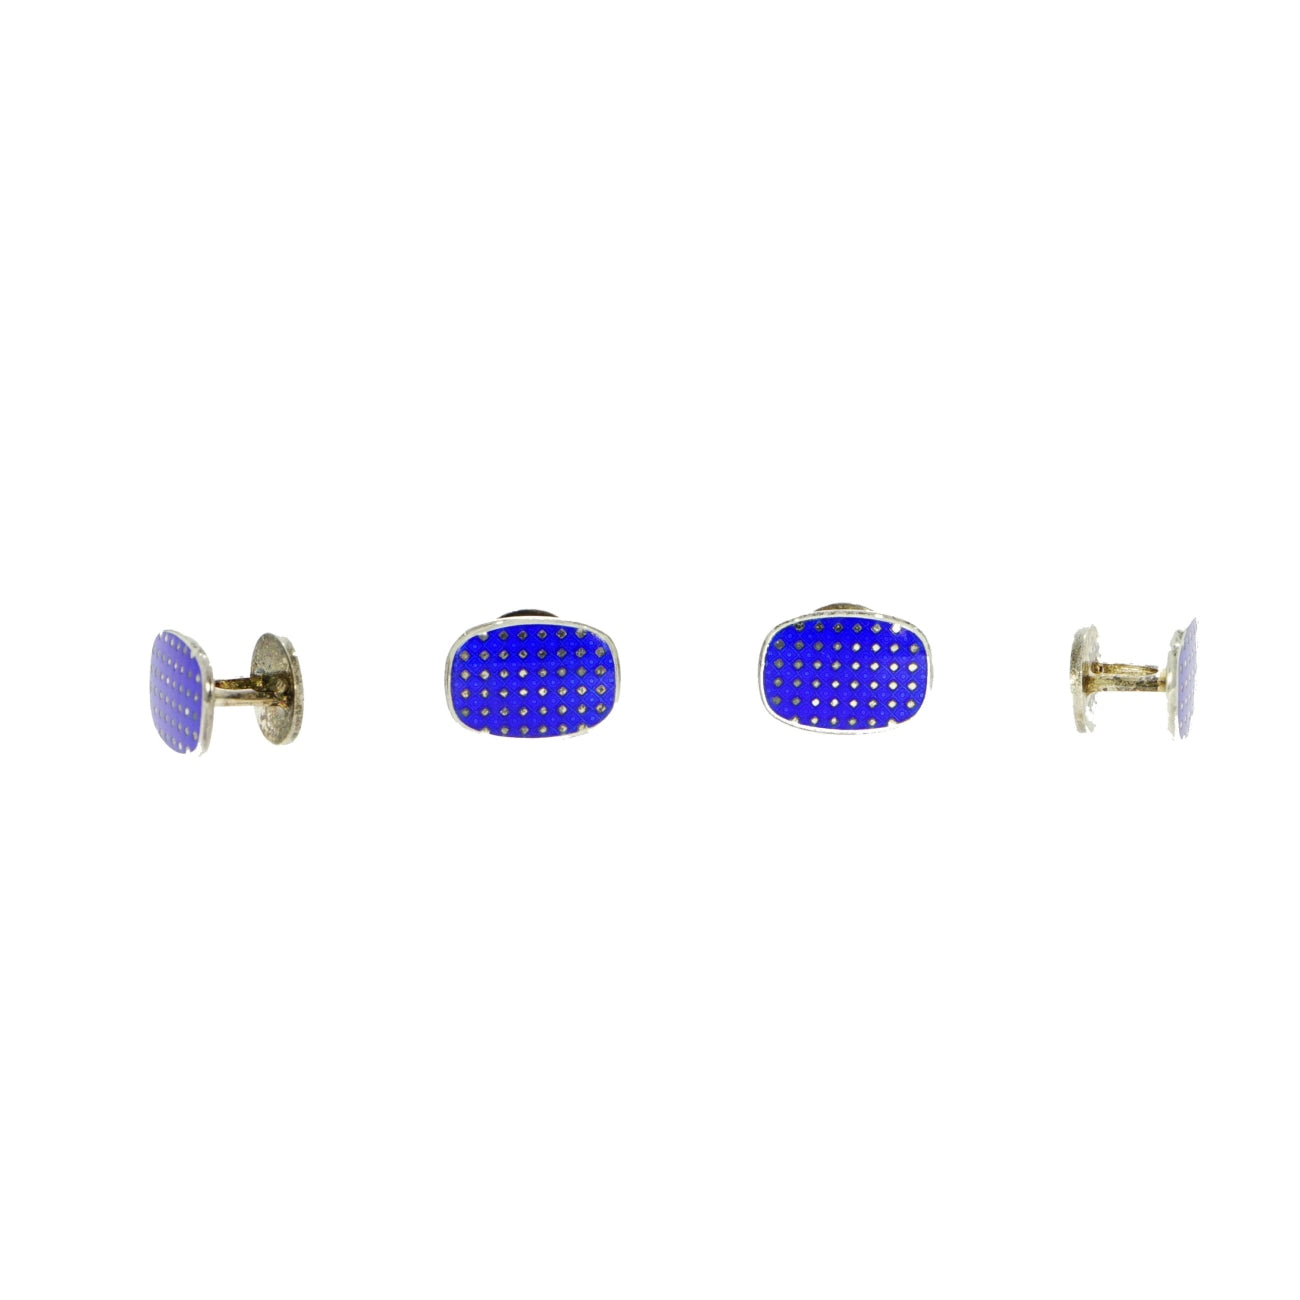 Manfredi Jewels Accessories - Blue Enamel Sterling Silver Formal Shirt Studs by Brixton & Gill | Manfredi Jewels